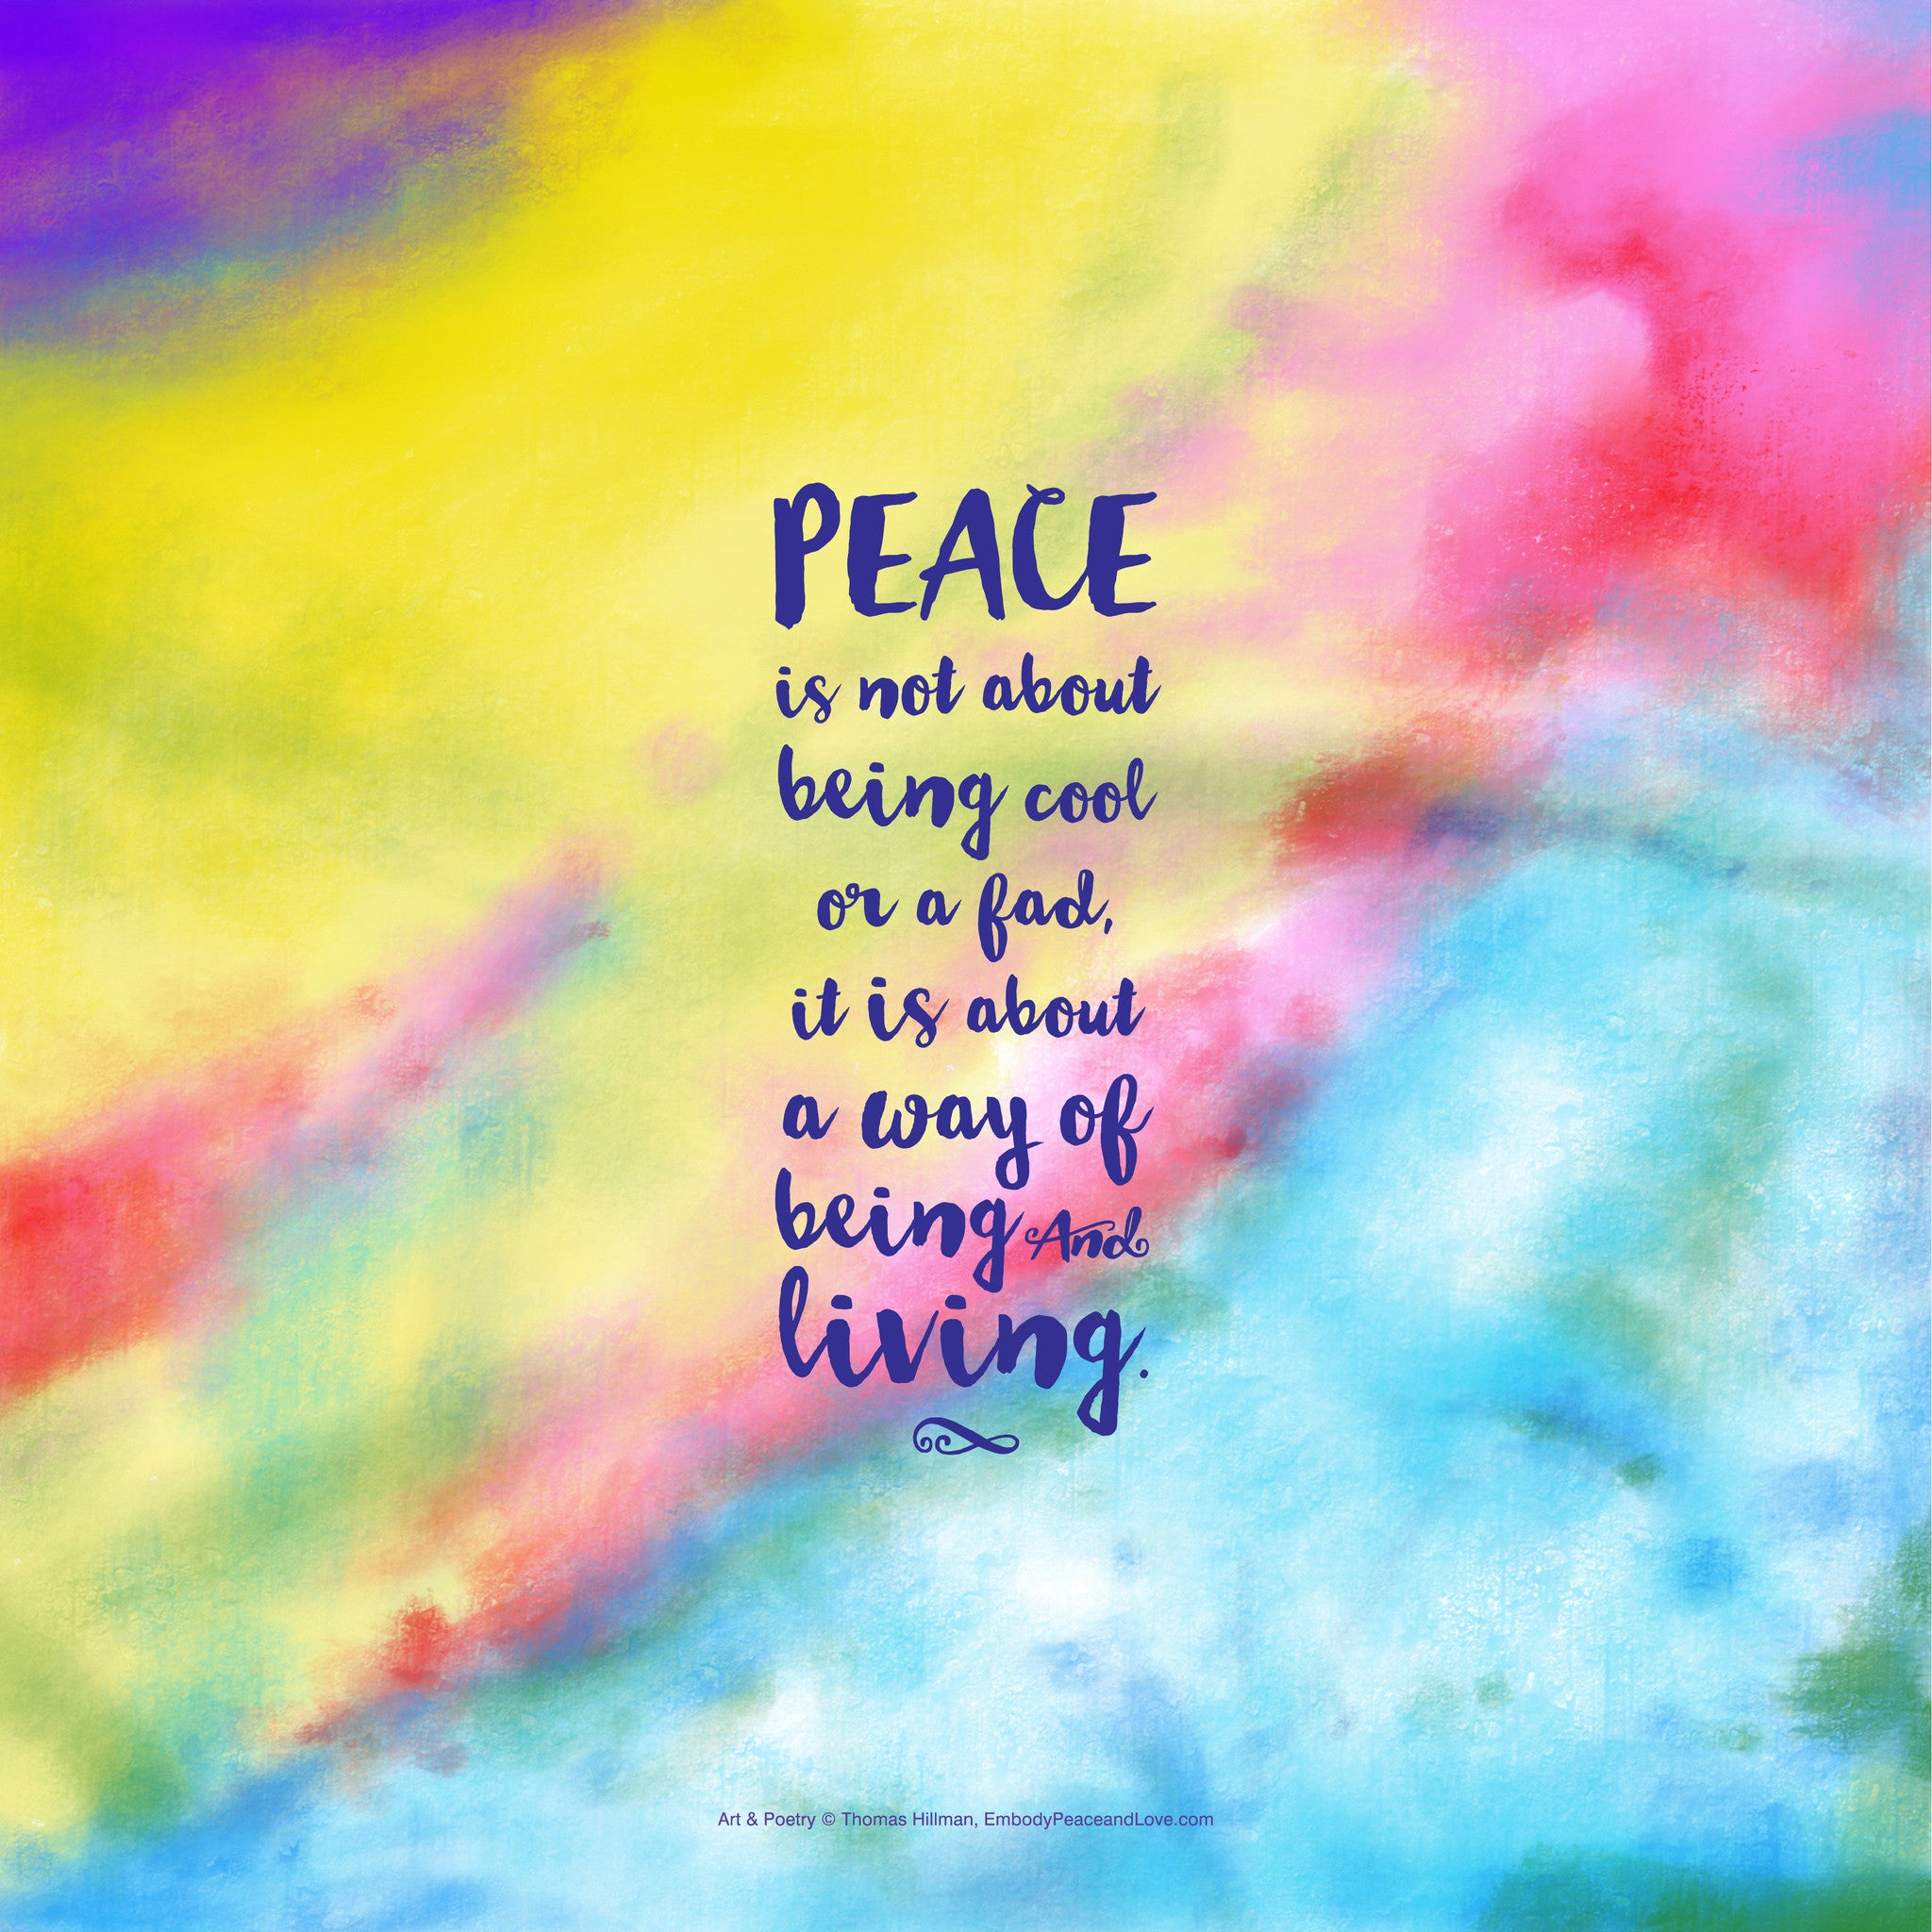 Poster_Peace is not about being cool or a fad, it is about a way of being and living.